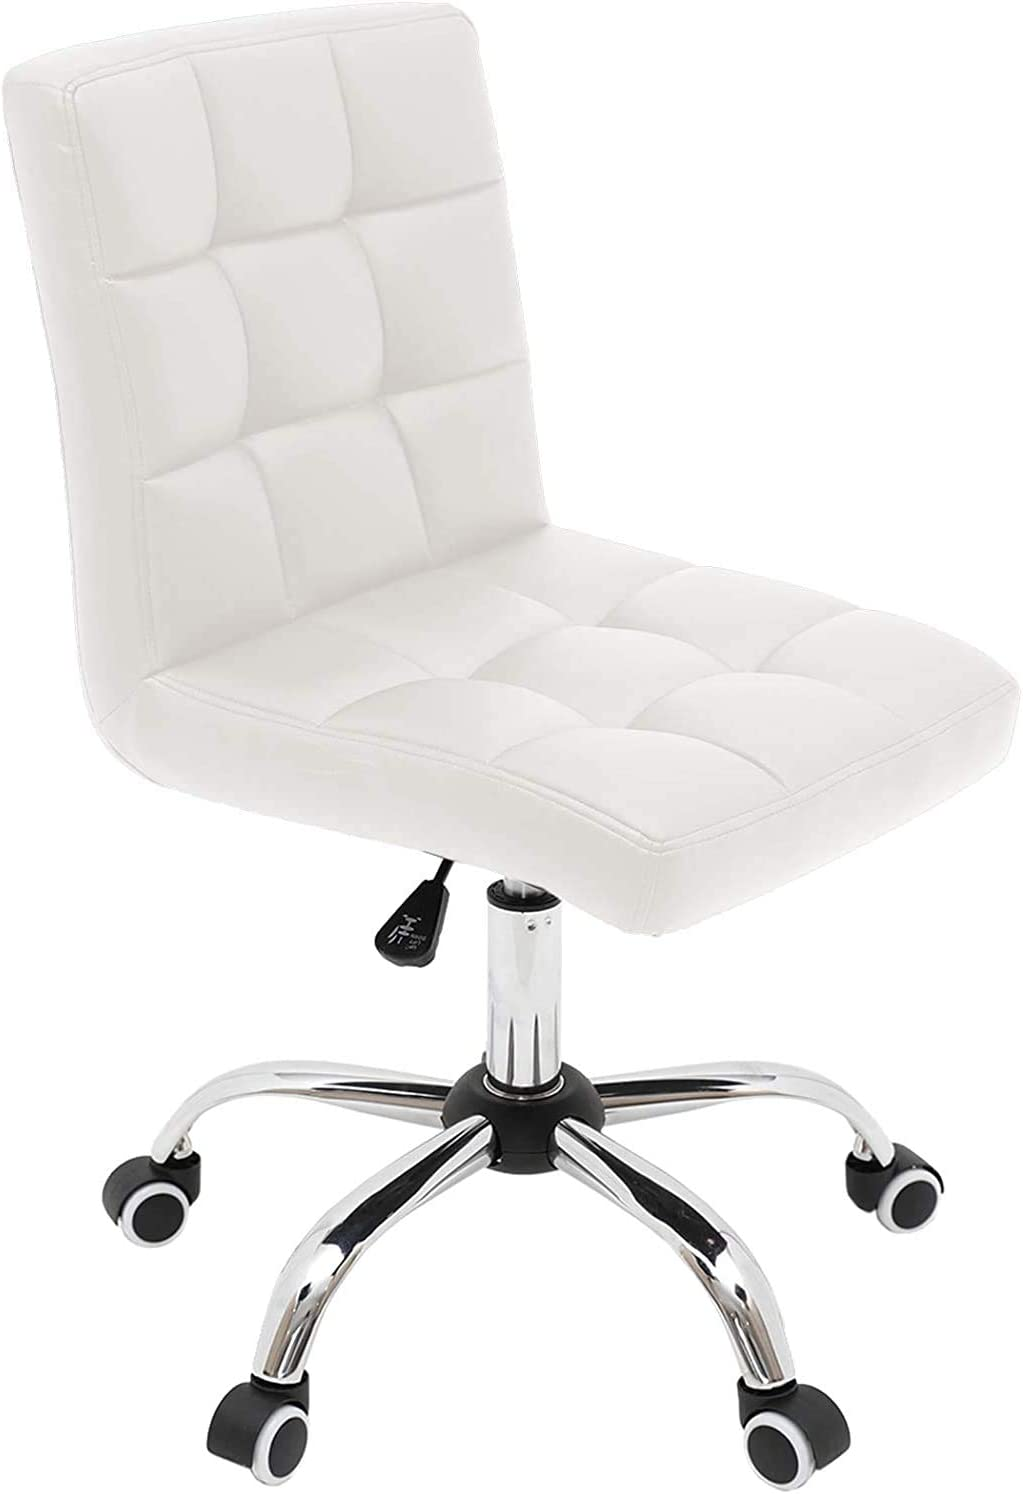 Armless Desk Chair Home Office Mid Ranking TOP16 Back Trust C Leather PU Task